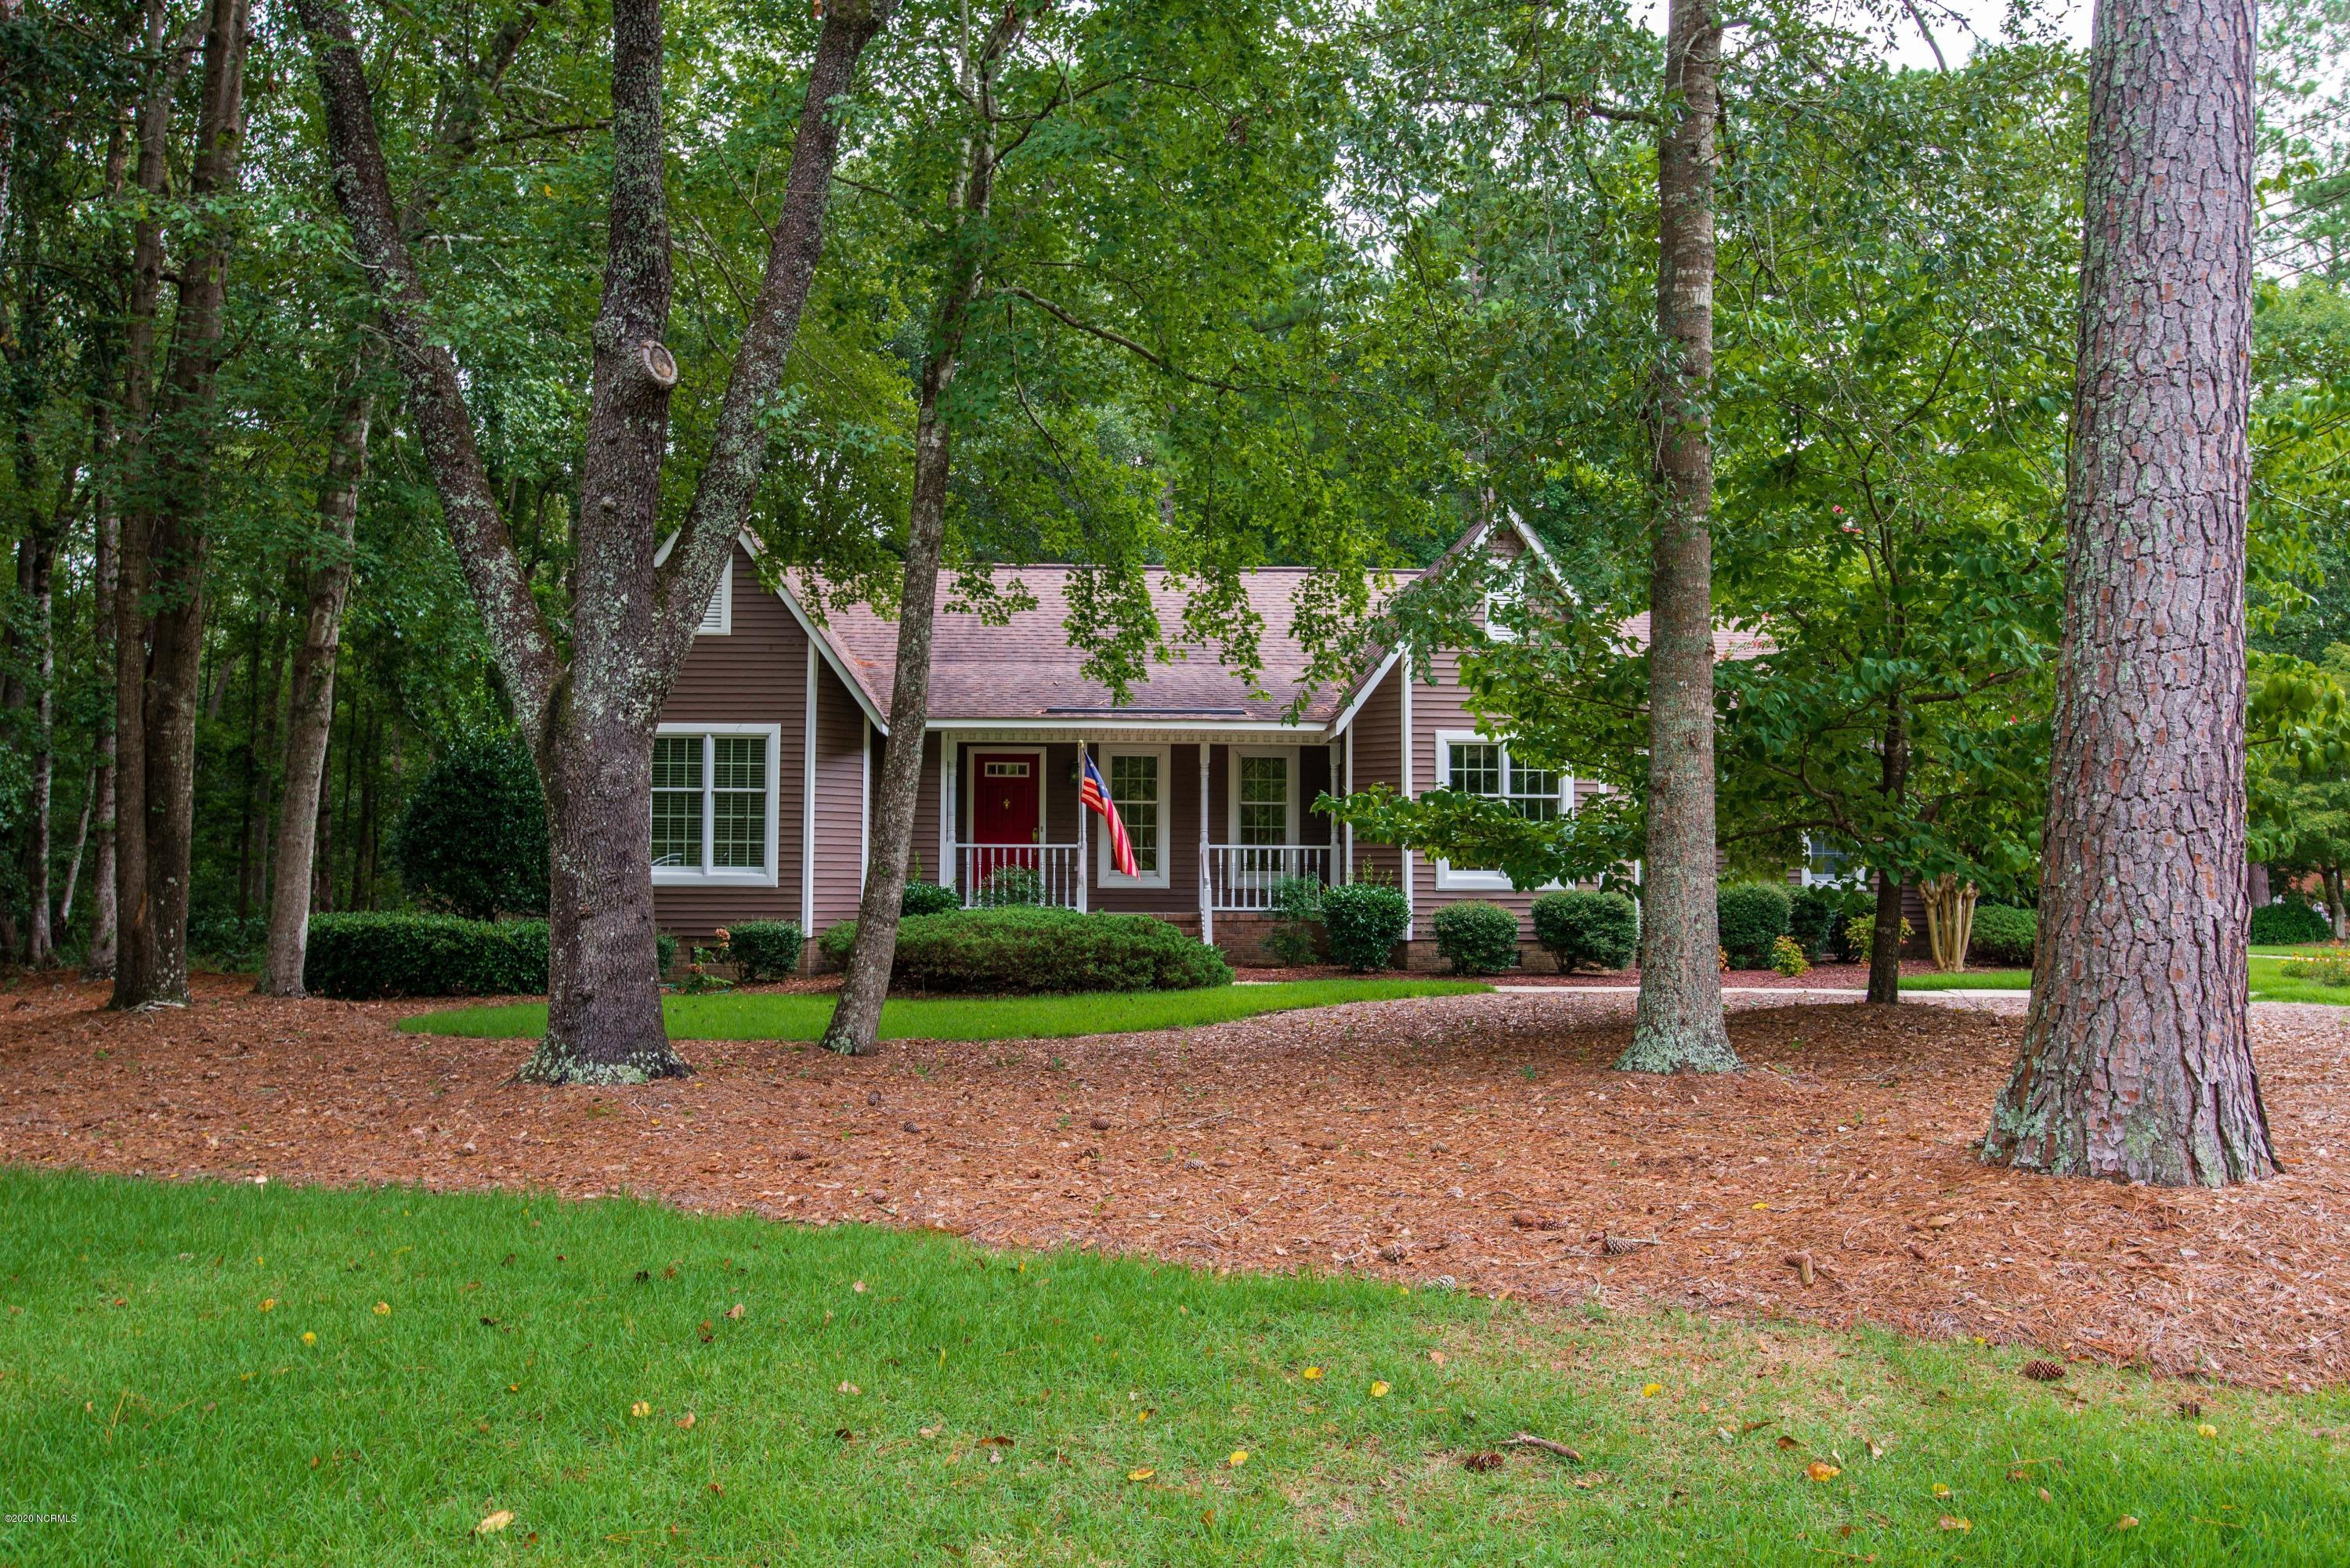 104 Southern Hills Drive, New Bern, North Carolina 28562, 3 Bedrooms Bedrooms, ,2 BathroomsBathrooms,Residential,For Sale,Southern Hills,100233587